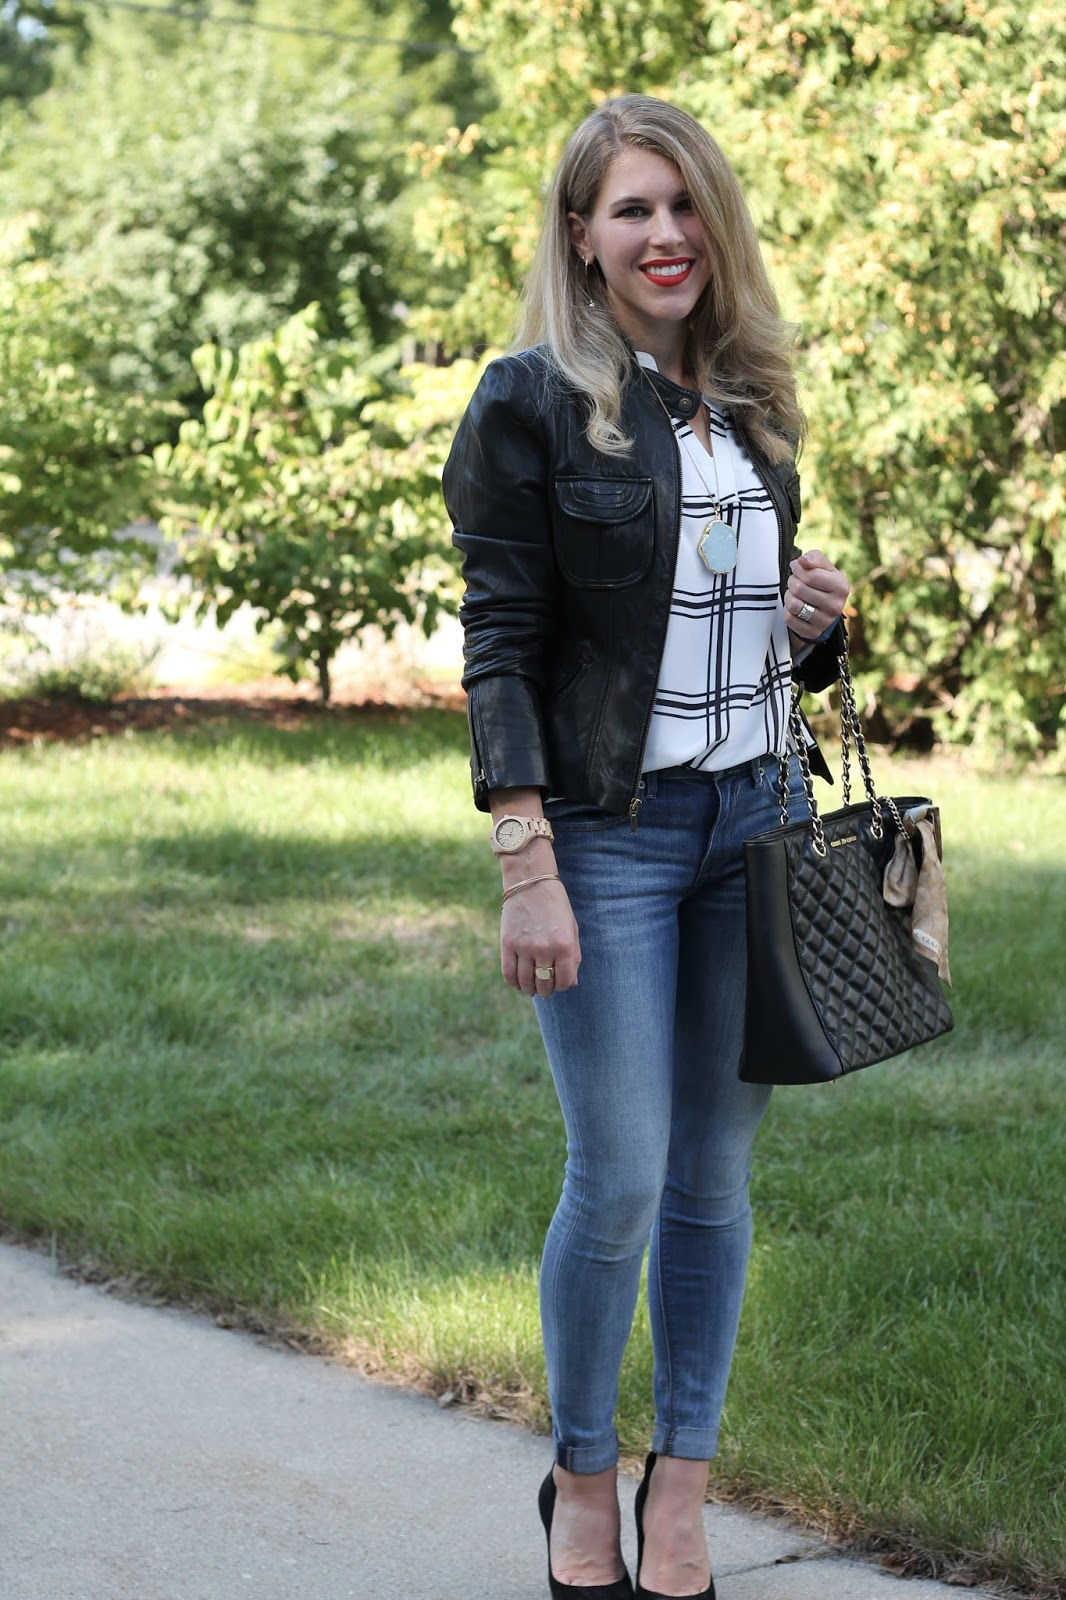 white and black windowpane blouse, jeans, black heels. Greg Michaels tote, black moto jacket, turquoise necklace and earrings